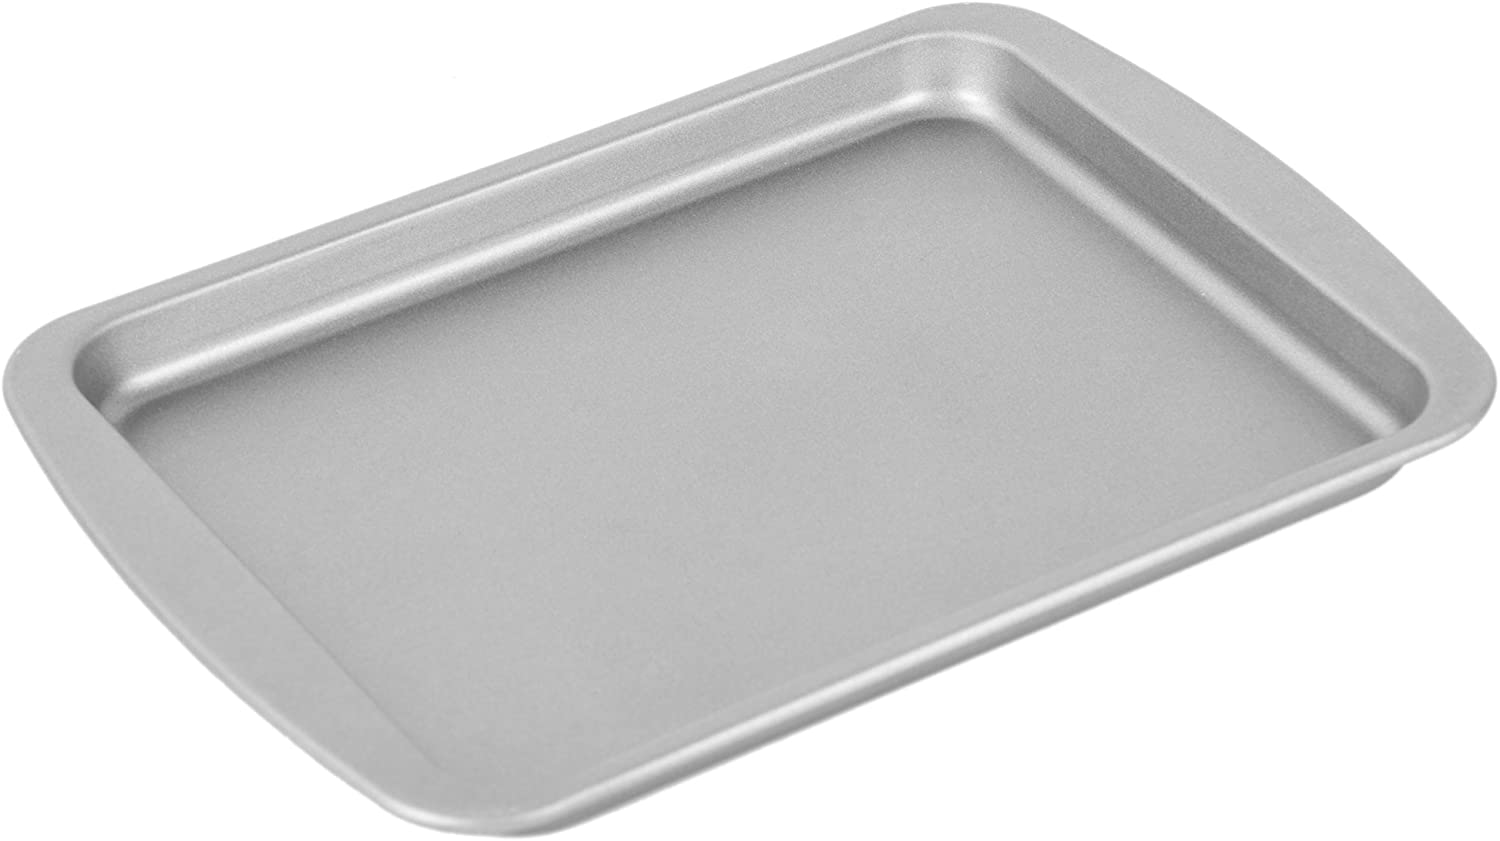 G & S Metal Products Company HG56 OvenStuff Non-Stick Toaster Oven Cookie Pan, 8.5 inches by 6.5 inches, Gray,Small